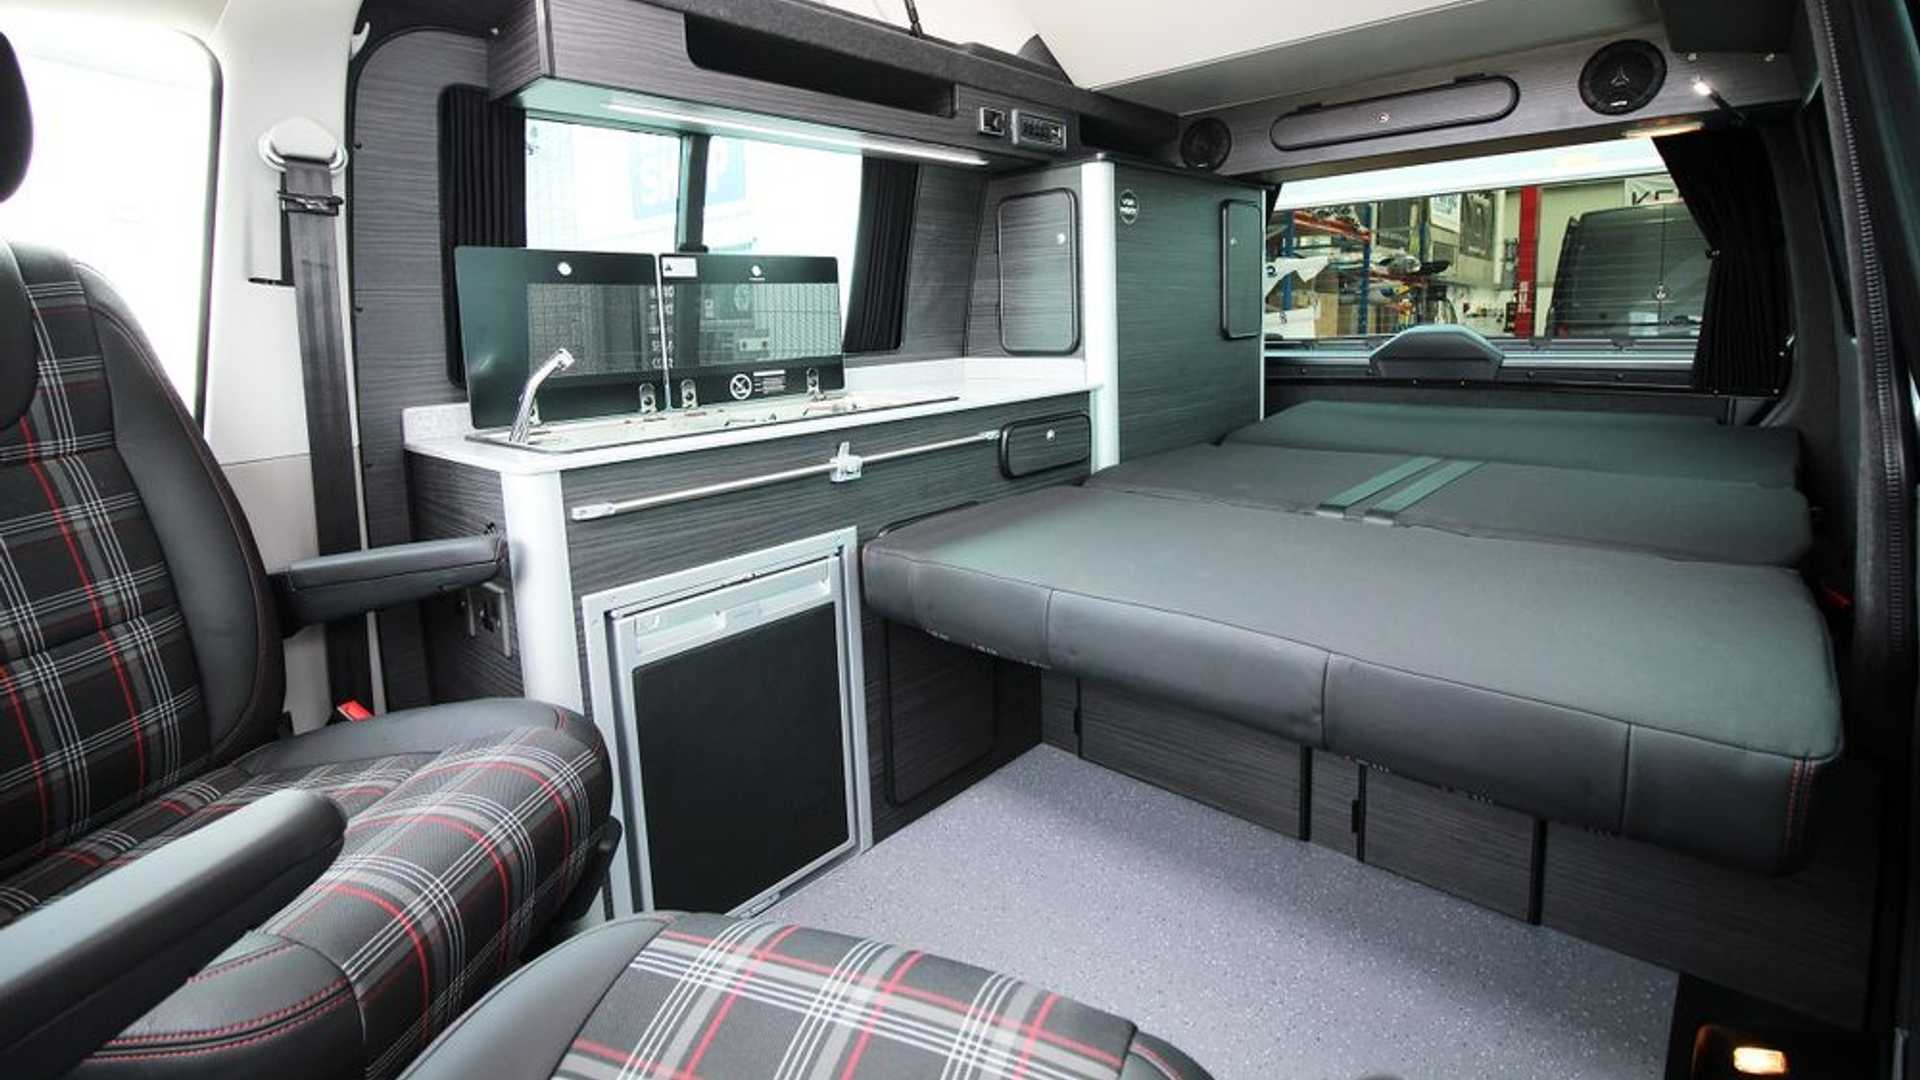 Vw Camper With Gti Inspired Tartan Seats Is On Our Want List